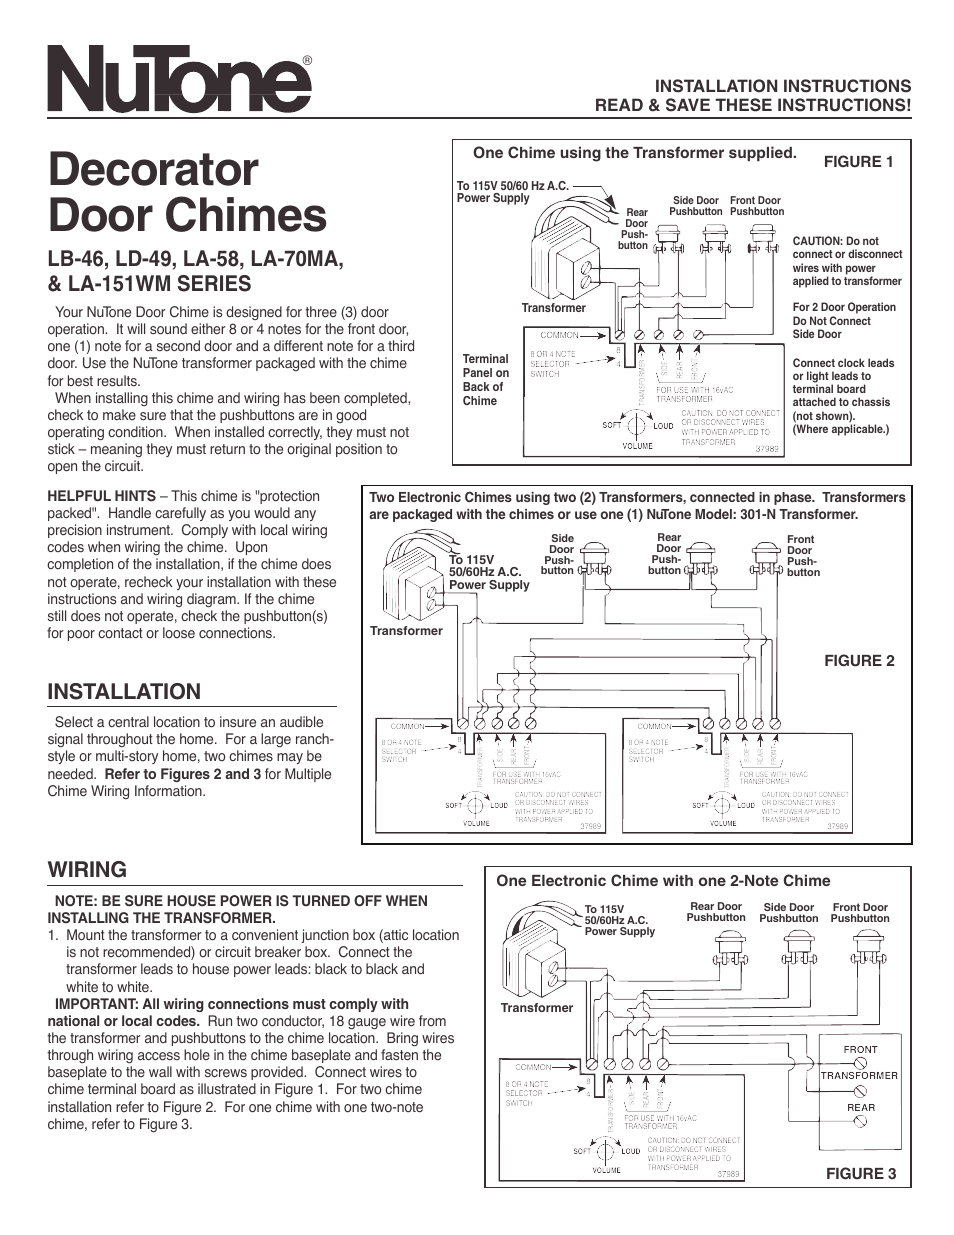 nutone decorator door chimes la 58 page1?resize\\\\\\\\\\\\\\\\\\\\\\\\\\\\\\\\\\\\\\\\\\\\\\\\\\\=665%2C861 ring doorbell wiring diagram doorbell transformer diagram \u2022 wiring Doorbell Wiring-Diagram Two Chimes at gsmportal.co